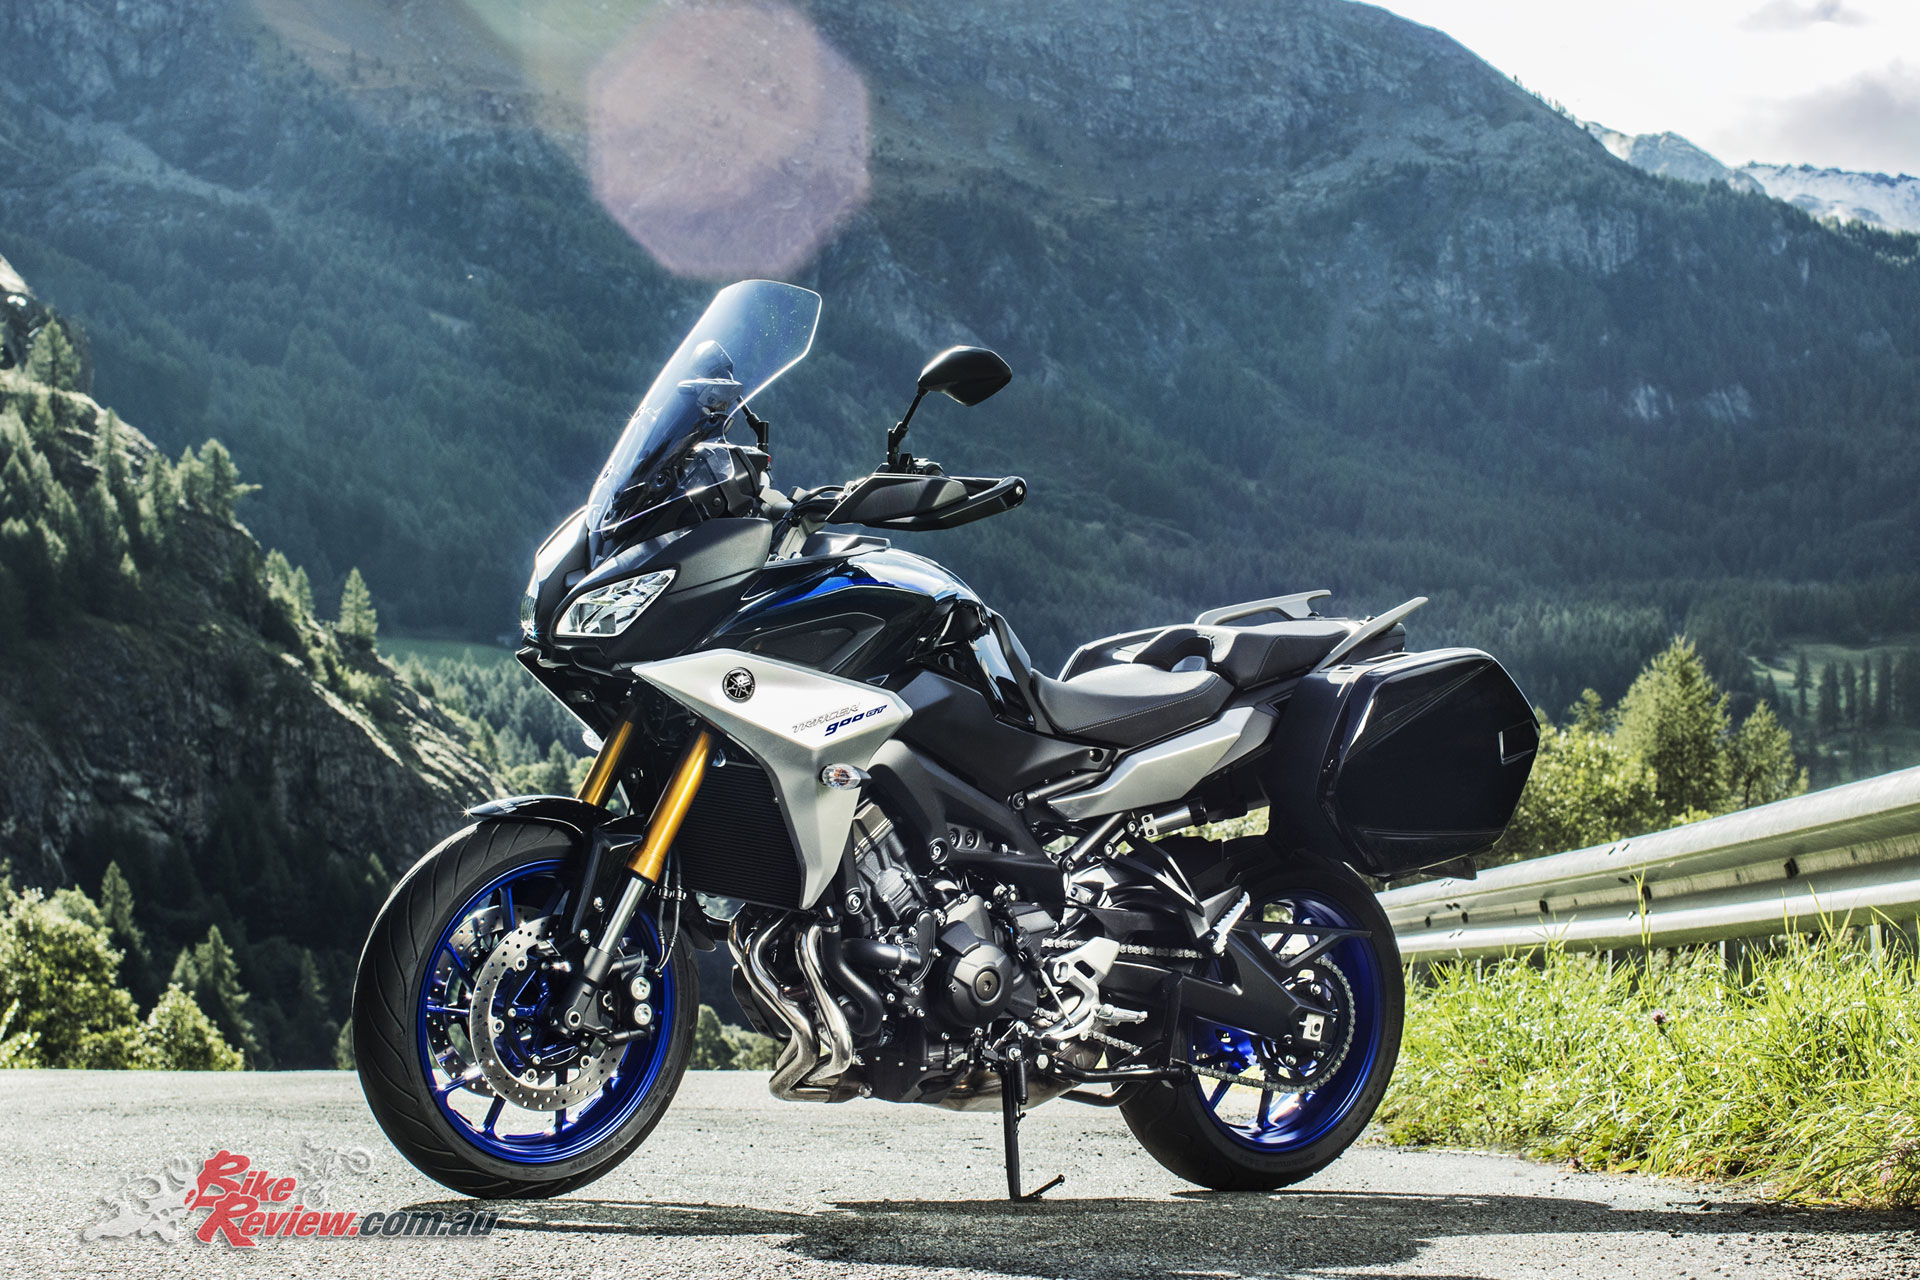 Yamaha unveil new Tracer GT & MT-09 SP at EICMA - Bike Review